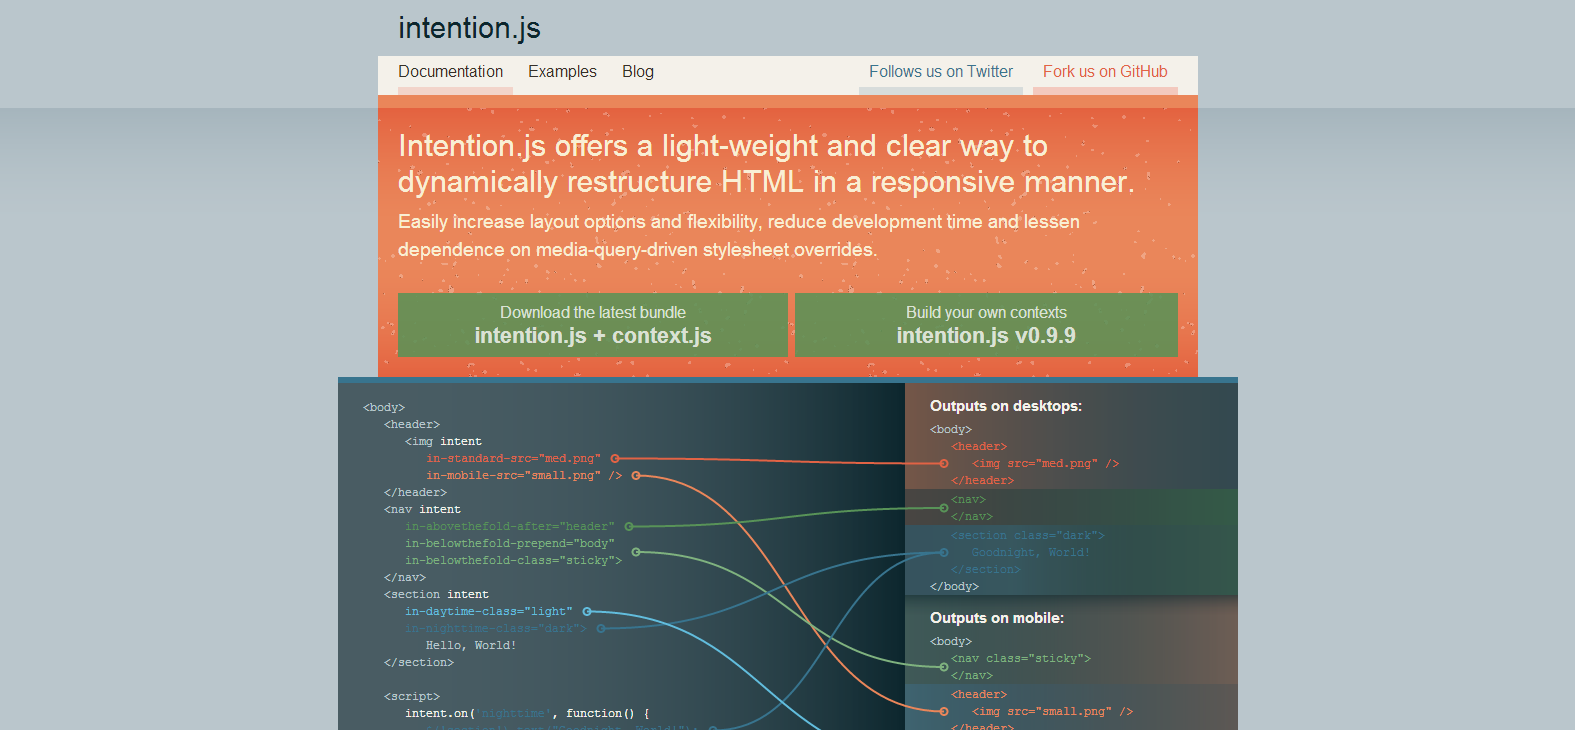 intention.js